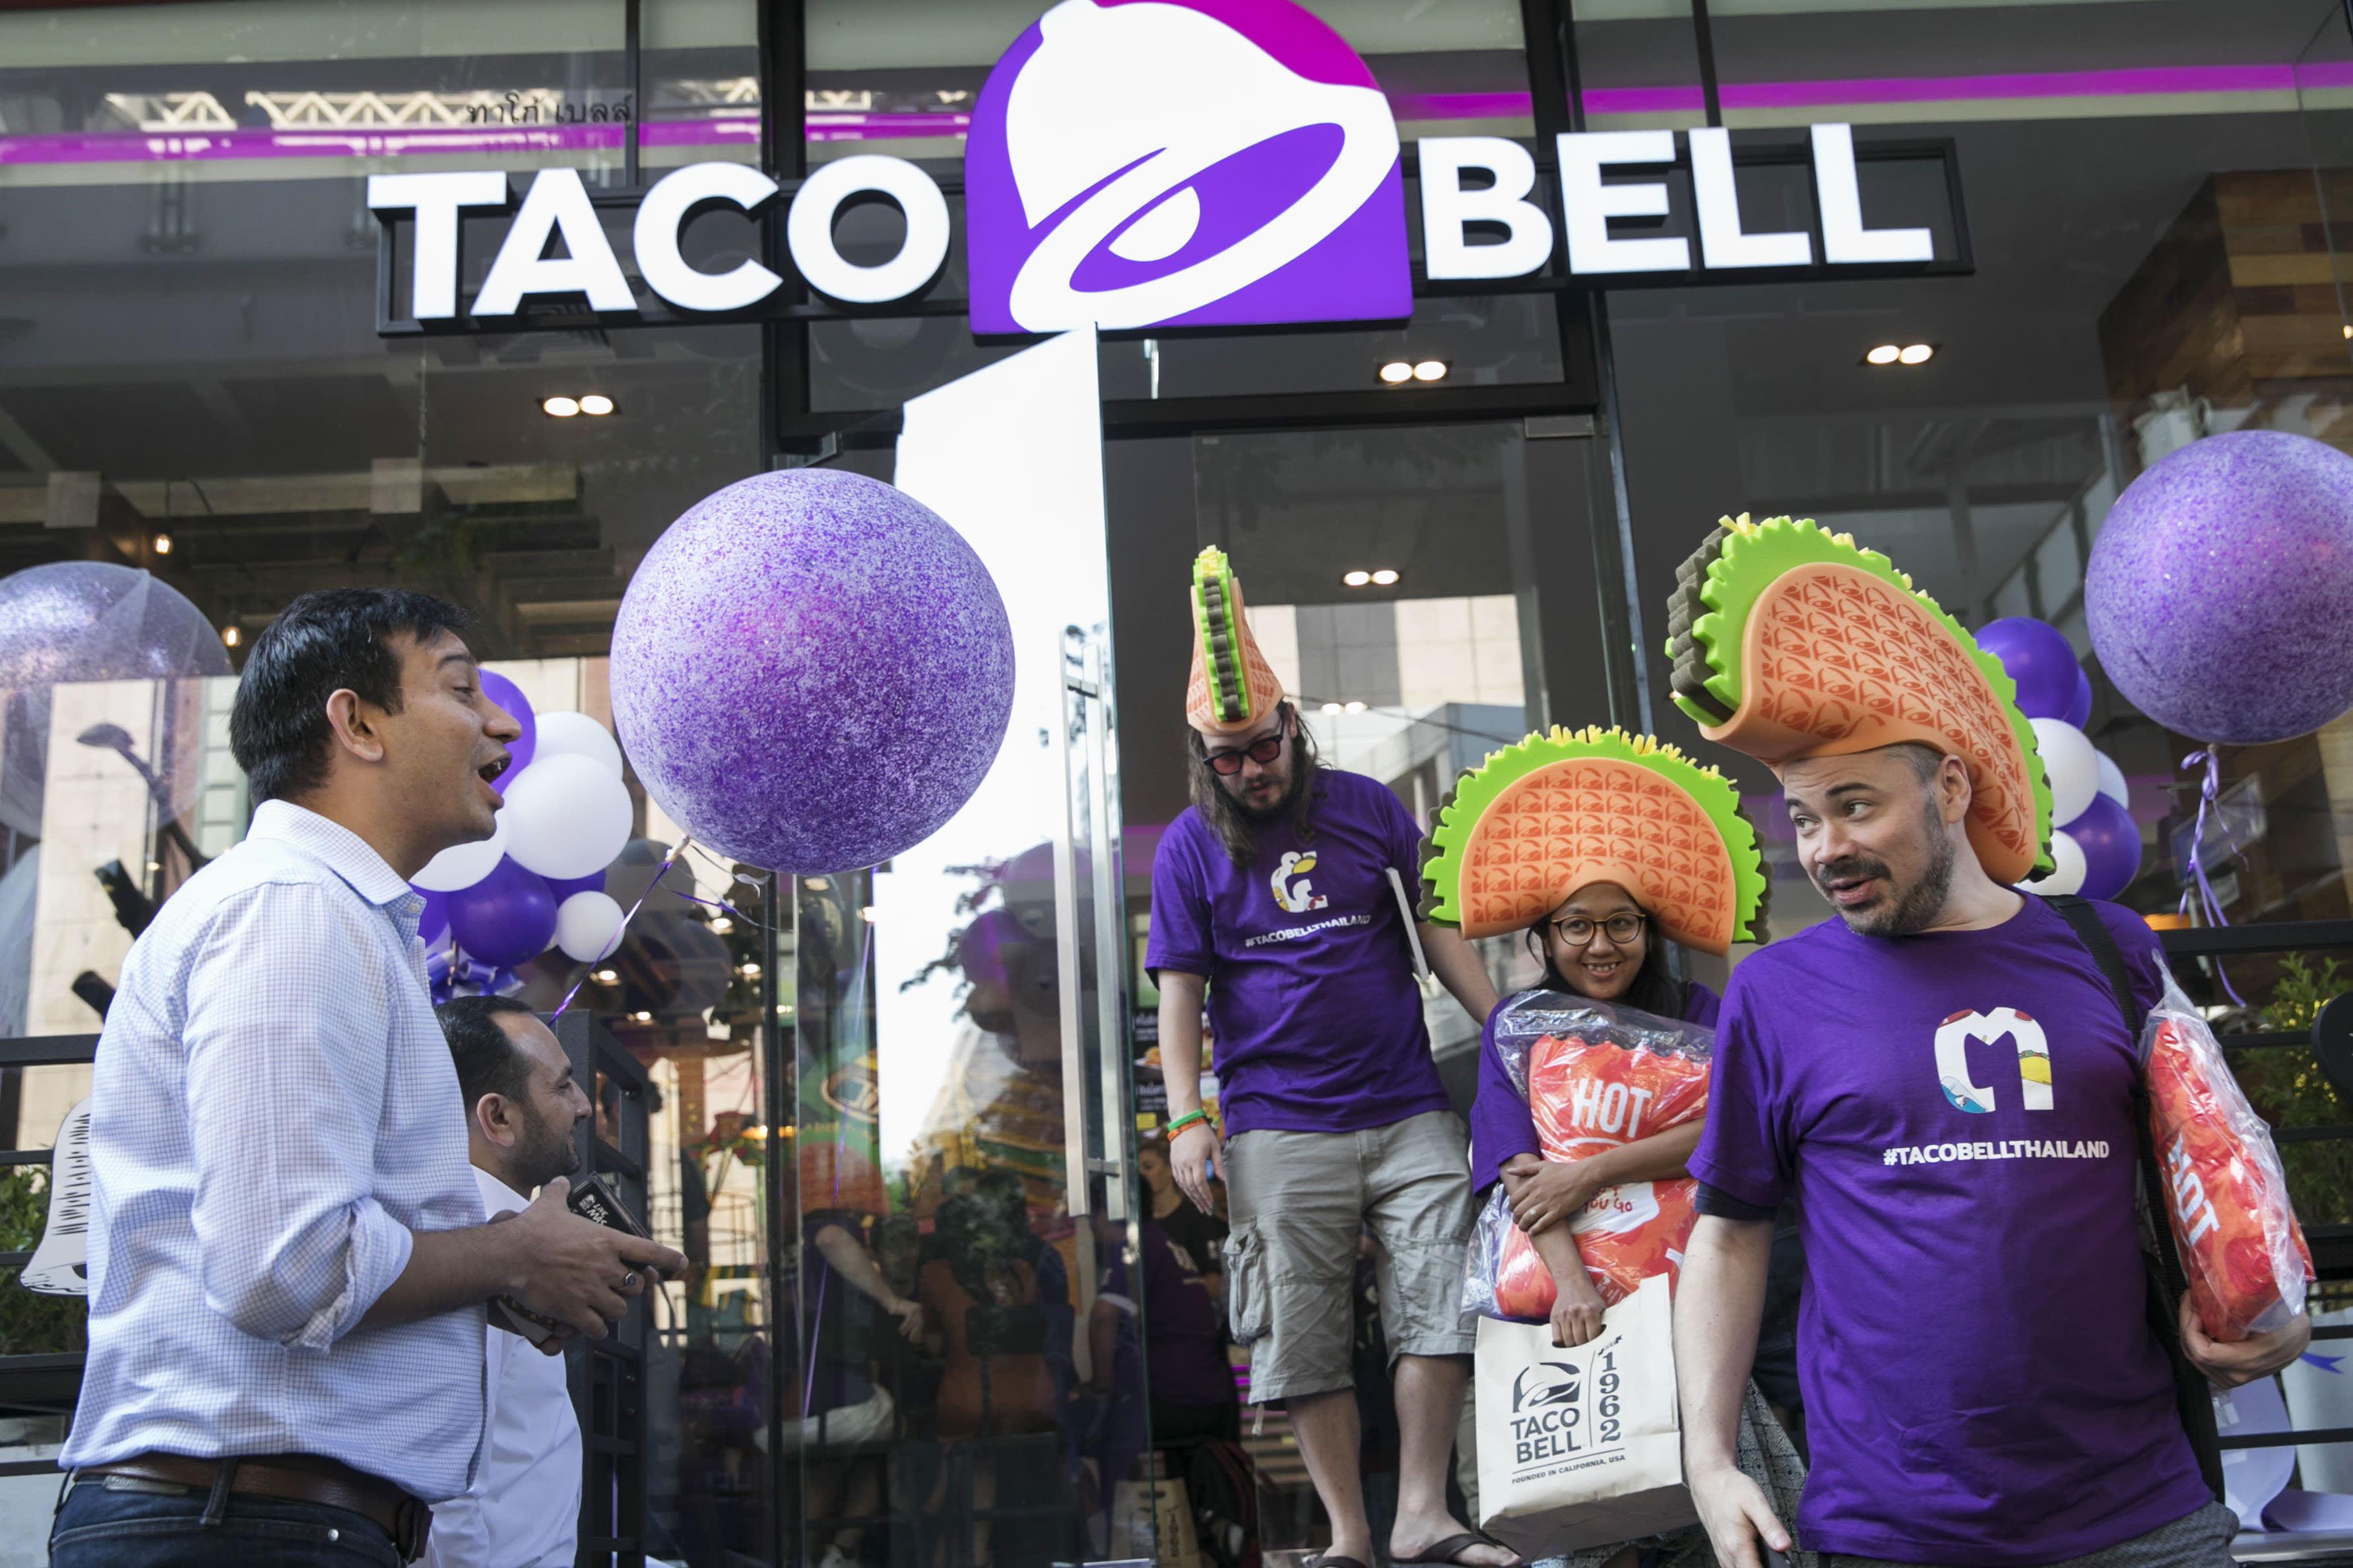 Shares of Taco Bell owner Yum Brands jump as earnings top estimates